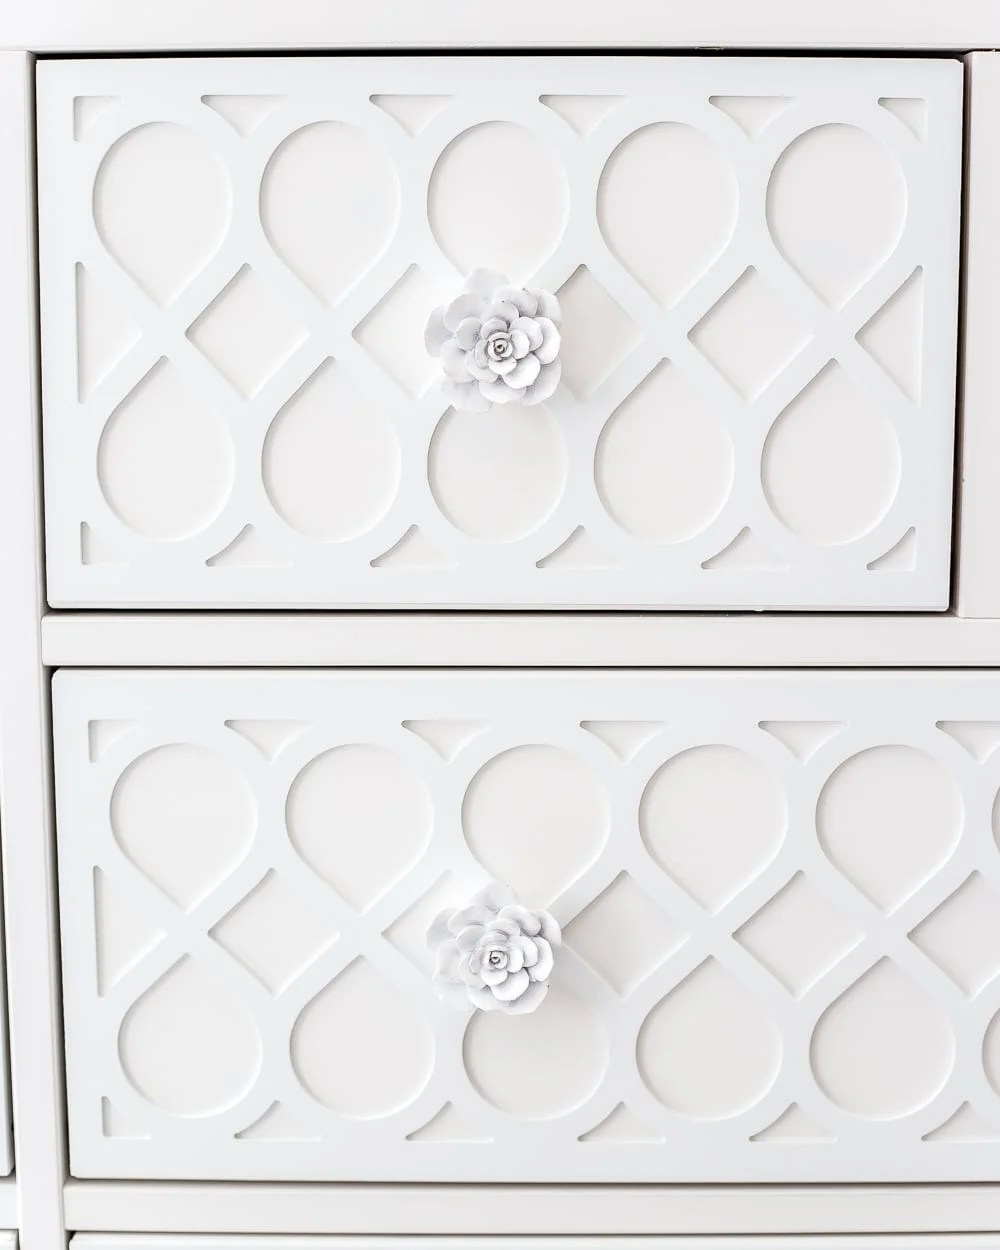 Dresser drawer details using feminine appliques and cactus flower knobs